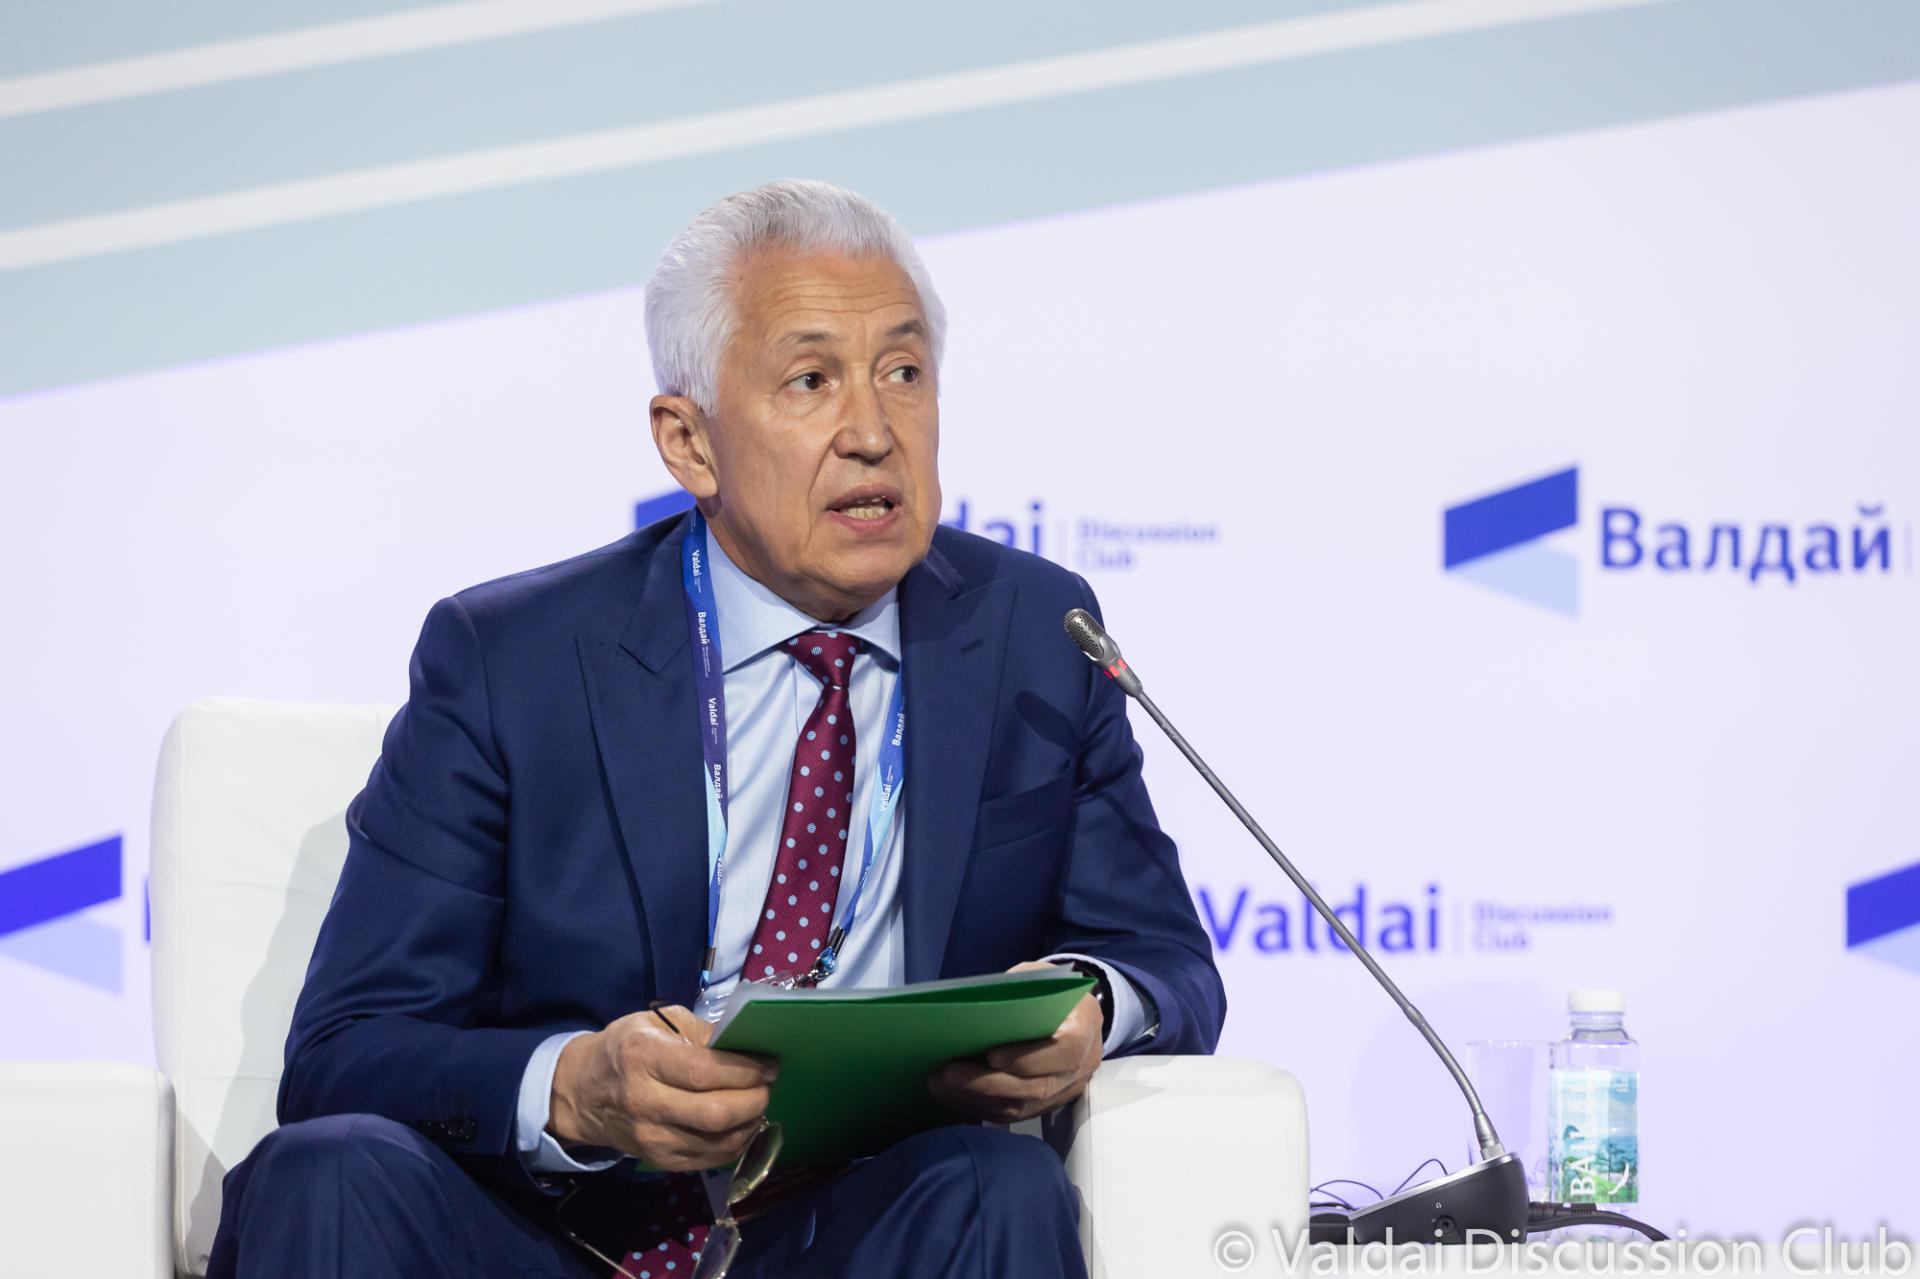 Trend's deputy director general moderated special session of Valdai Club annual meeting (PHOTO)